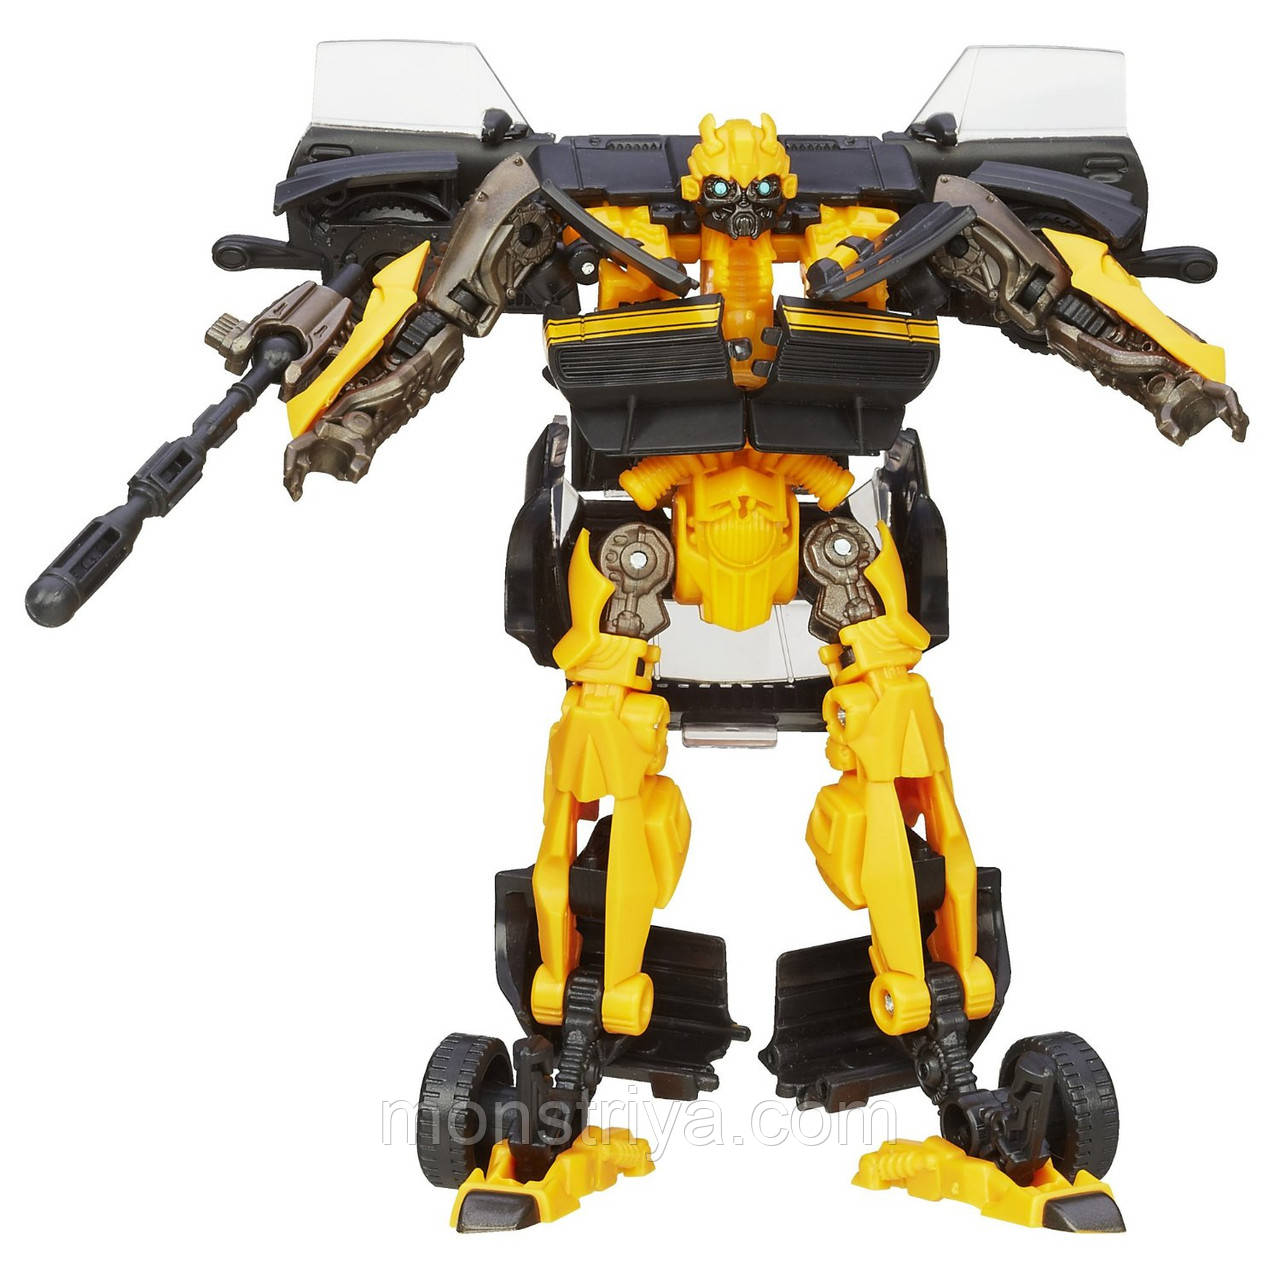 Transformers Age of Extinction Generations Deluxe Class High Octane Bumblebee Бамблби, Киев, фото 1